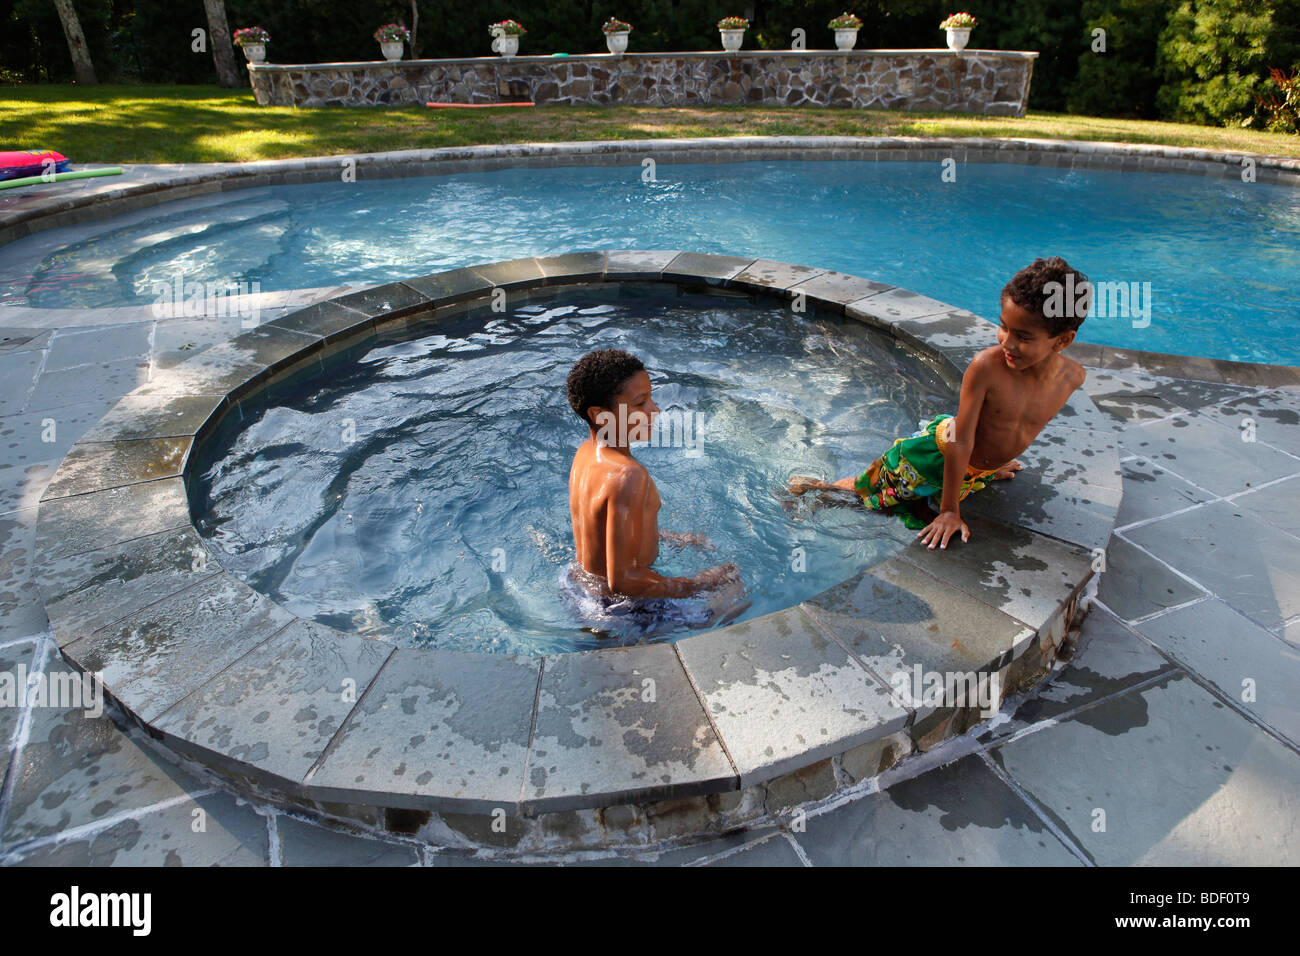 two boys eight and ten years old play in a backyard swimming